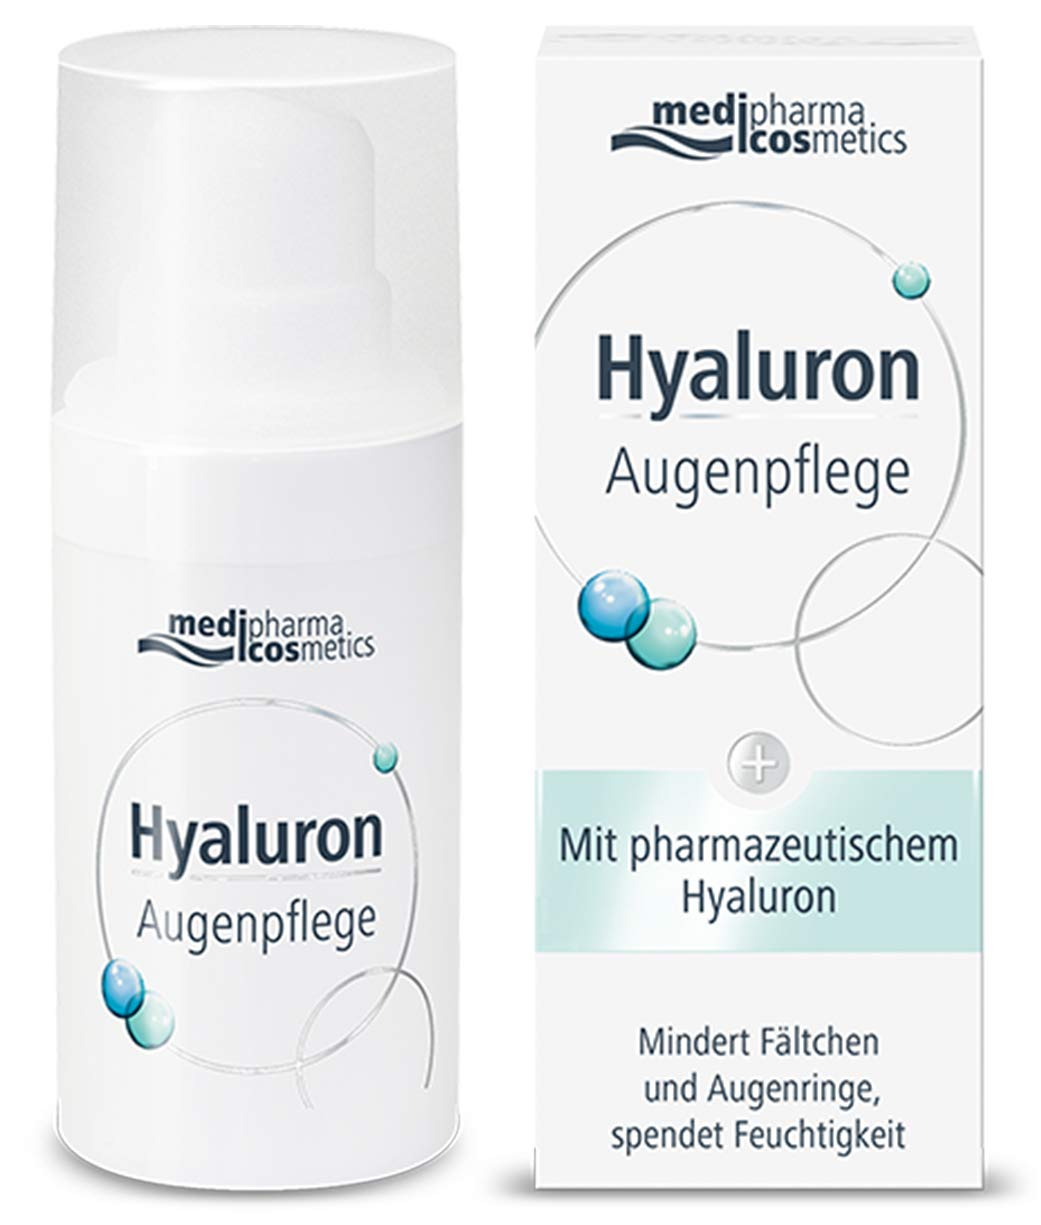 Medipharma Cosmetics Hyaluron Eye Care Cream - Reduces Wrinkles, Dark Circles & Puffing - Paraben Free - Moisturizer - Suitable For Dry, Sensitive Skin - 15 ML